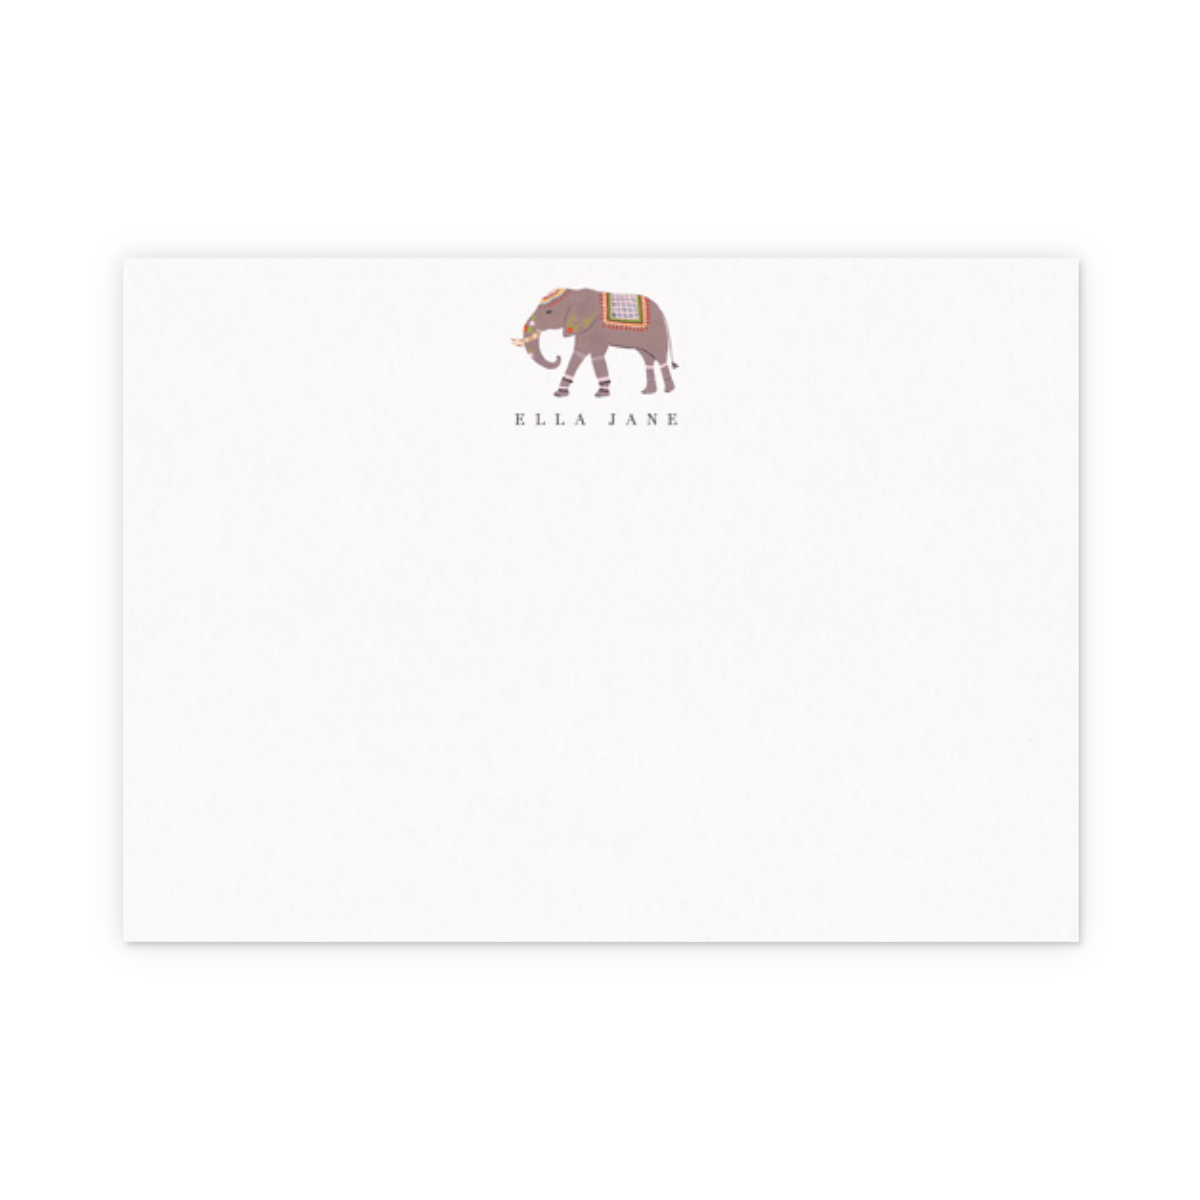 Https%3a%2f%2fwww.papier.com%2fproduct image%2f3970%2f10%2feastern elephant 1053 front 1453911071.png?ixlib=rb 1.1